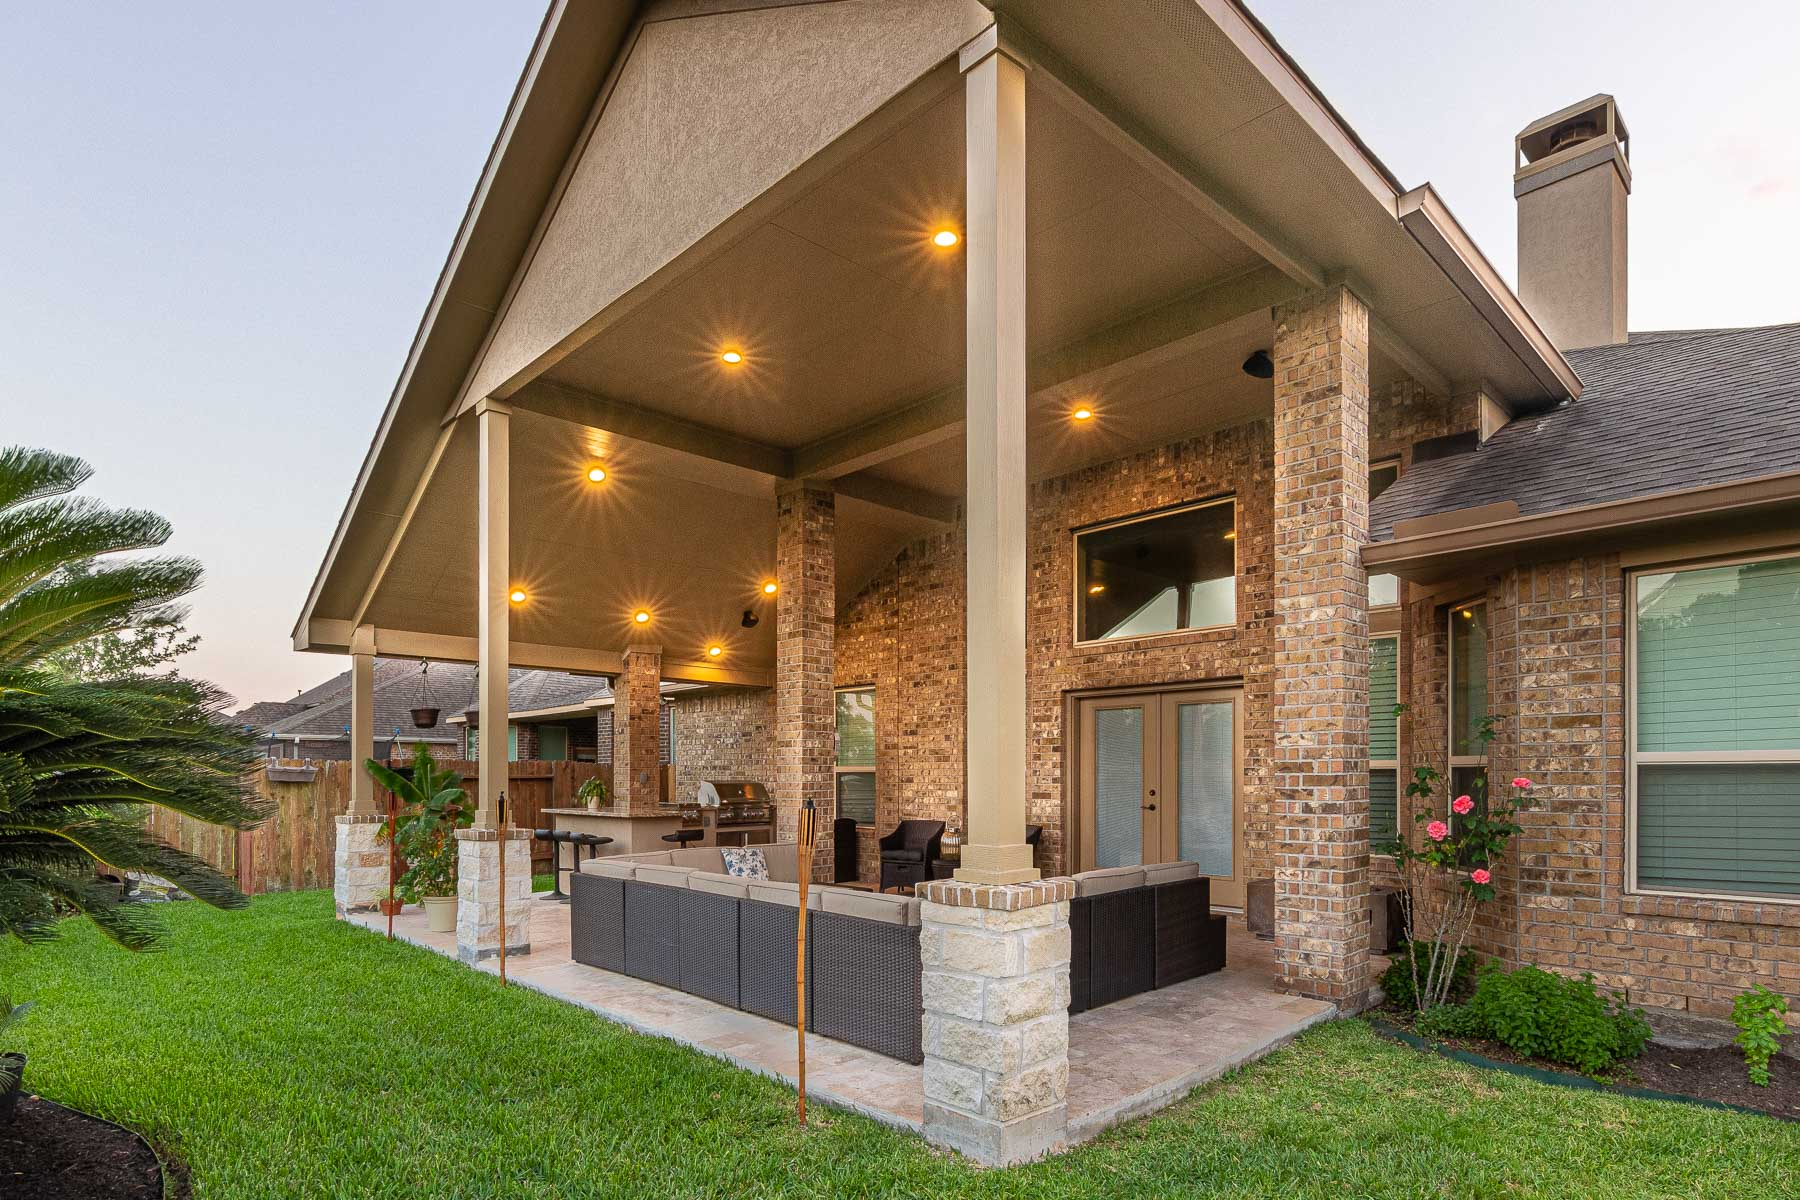 Patio Cover and Outdoor Kitchen - HHI Patio Covers on Backyard Patio Covers  id=65128